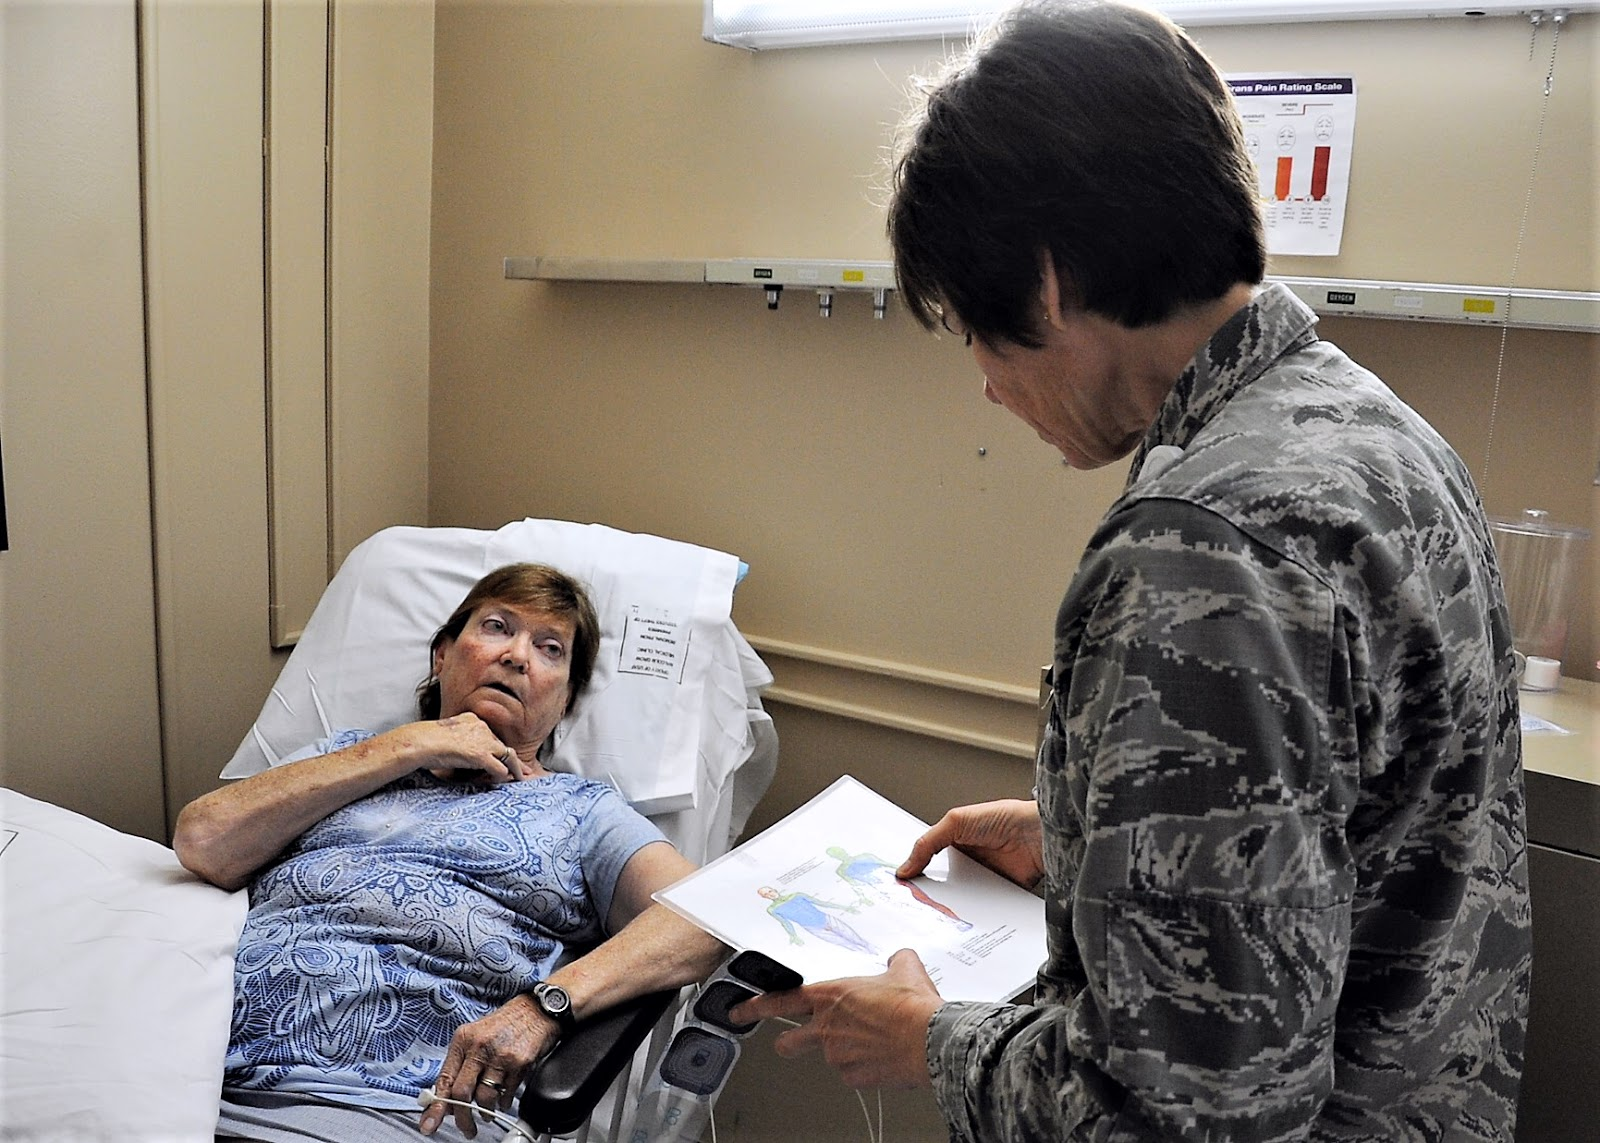 A patient talks to a military nurse from a hospital bed